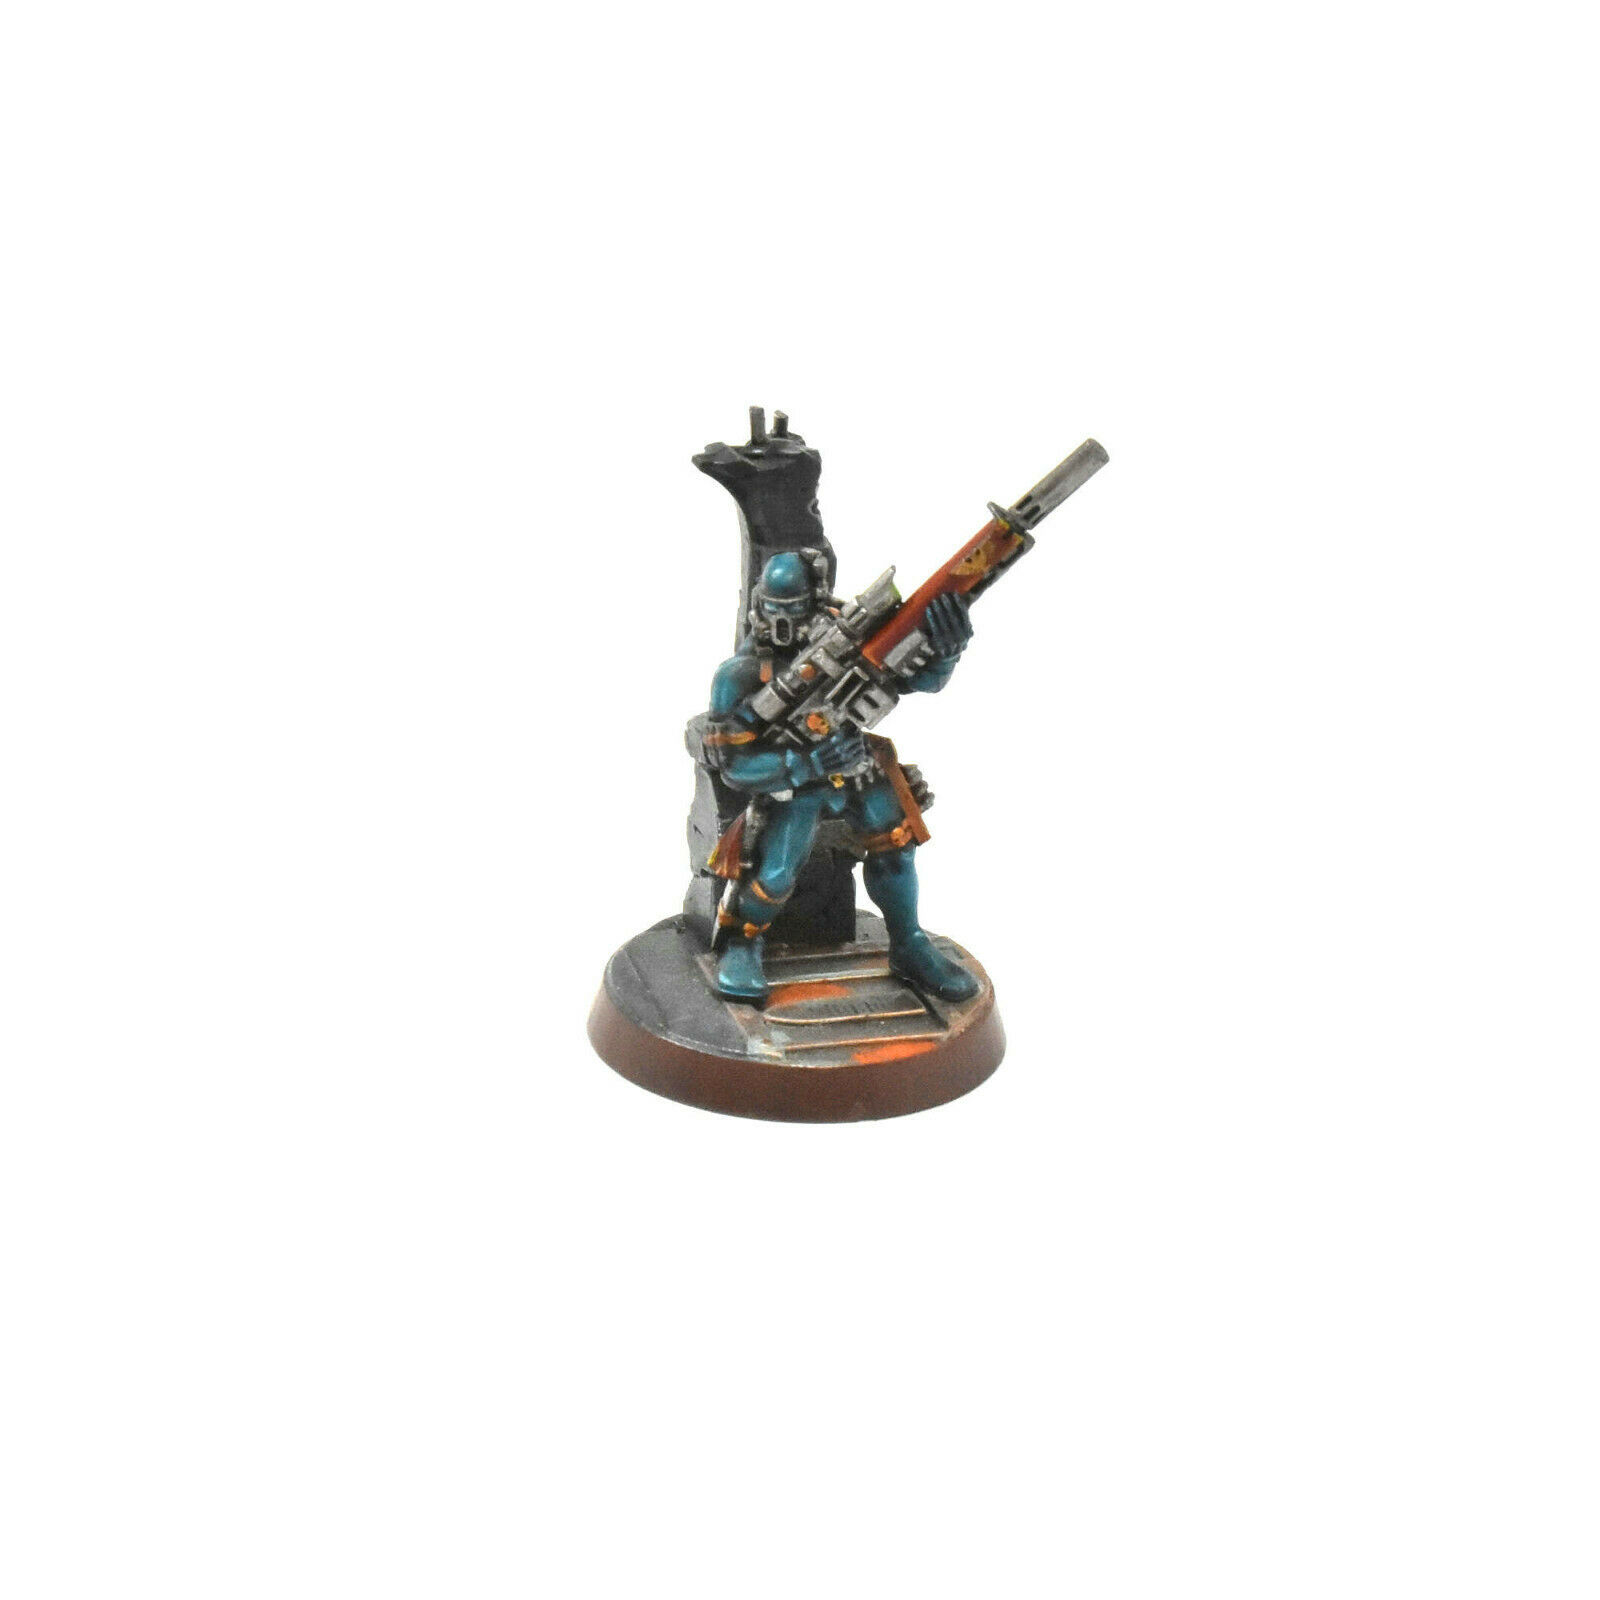 OFFICIO ASSASSINORUM Vindicare assassin WELL PAINTED Warhammer 40K